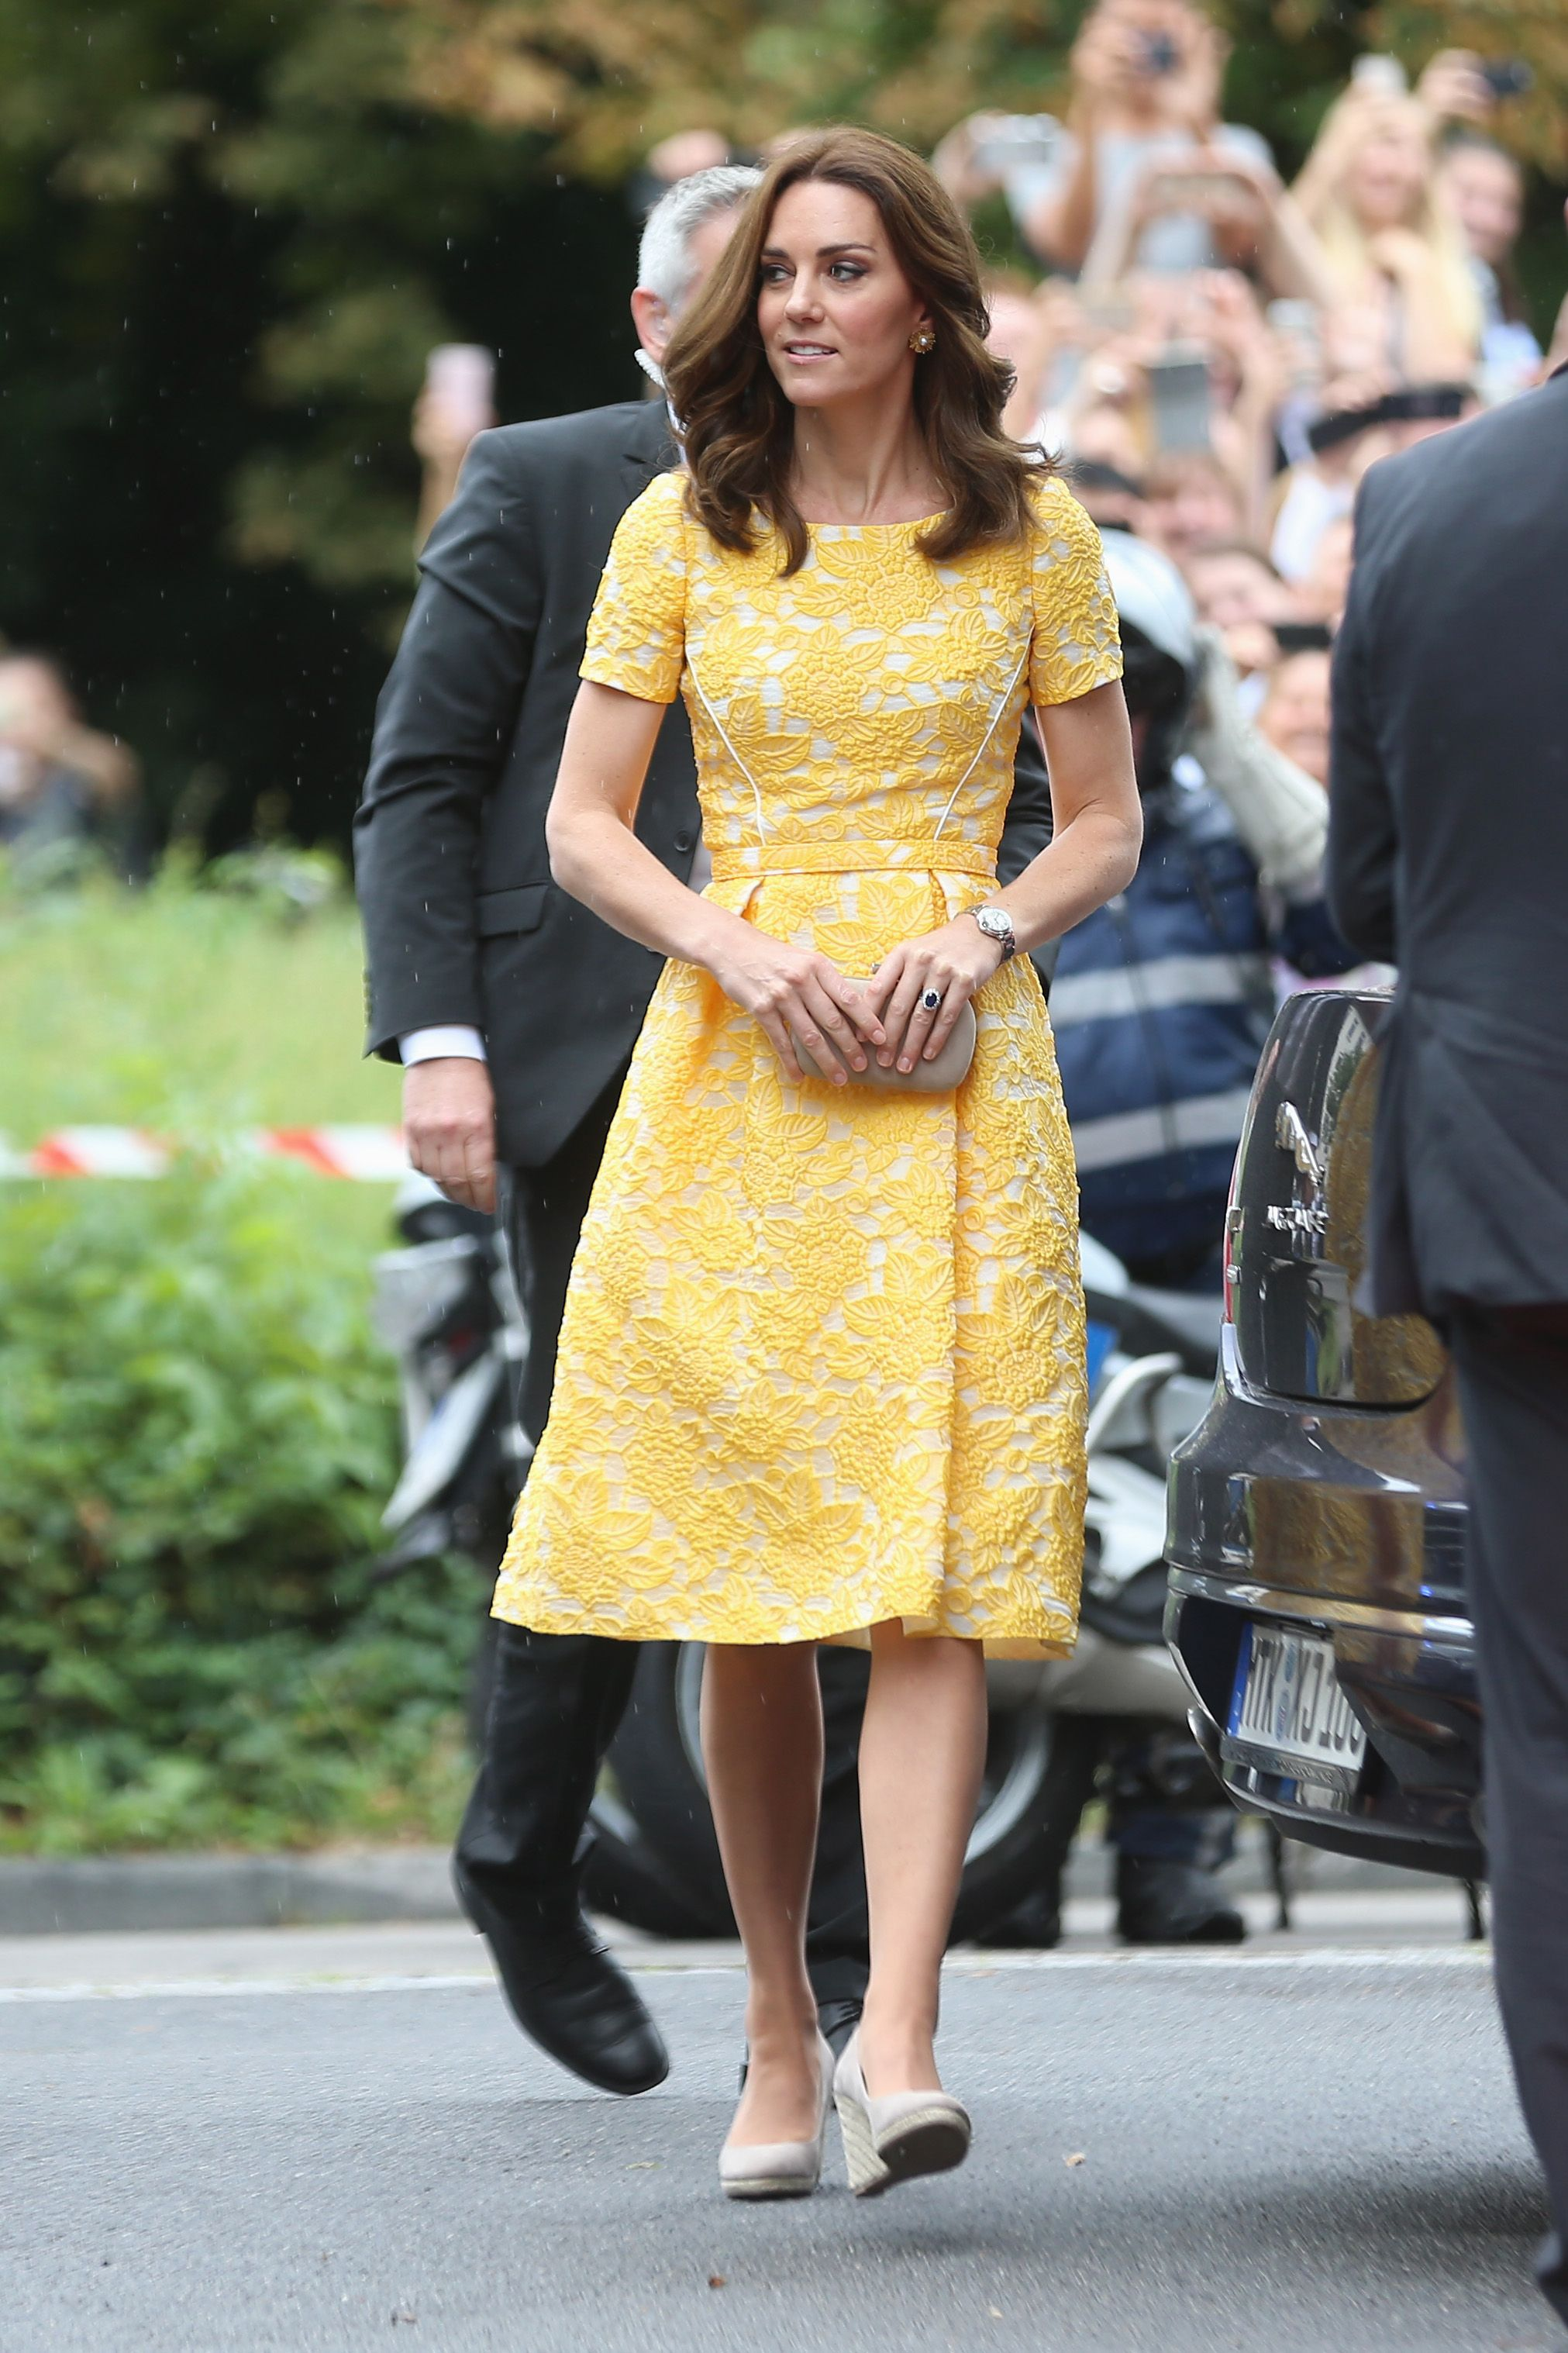 Allow Kate Middleton to Instantly Brighten Your Mood With Just Her Dress